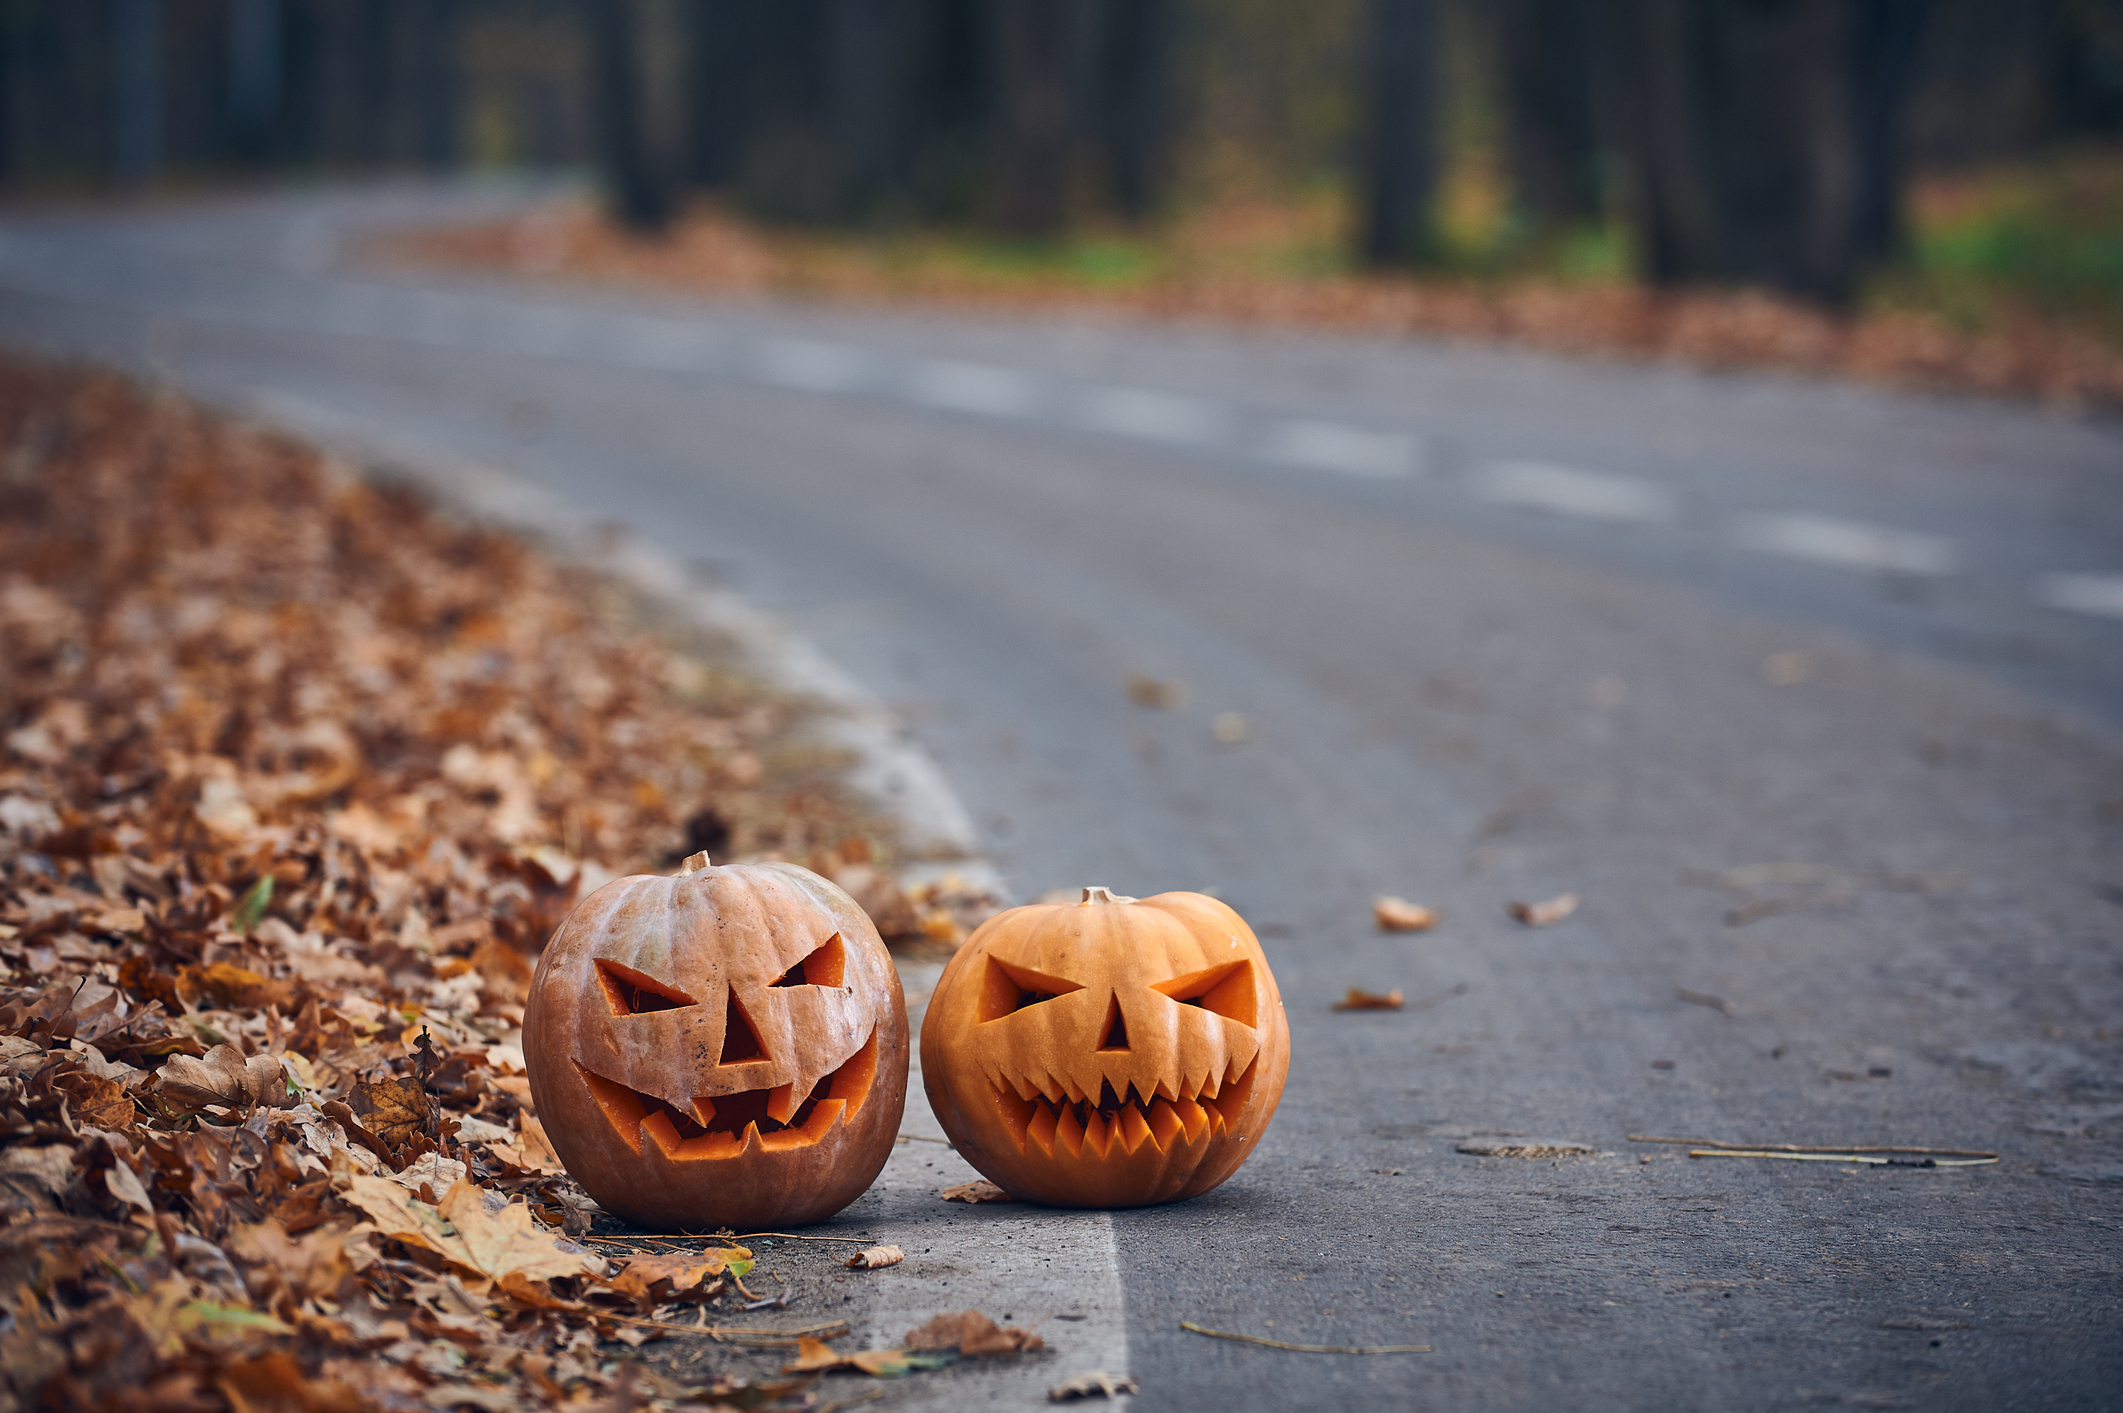 Safety Tips for Drivers and Pedestrians During Halloween